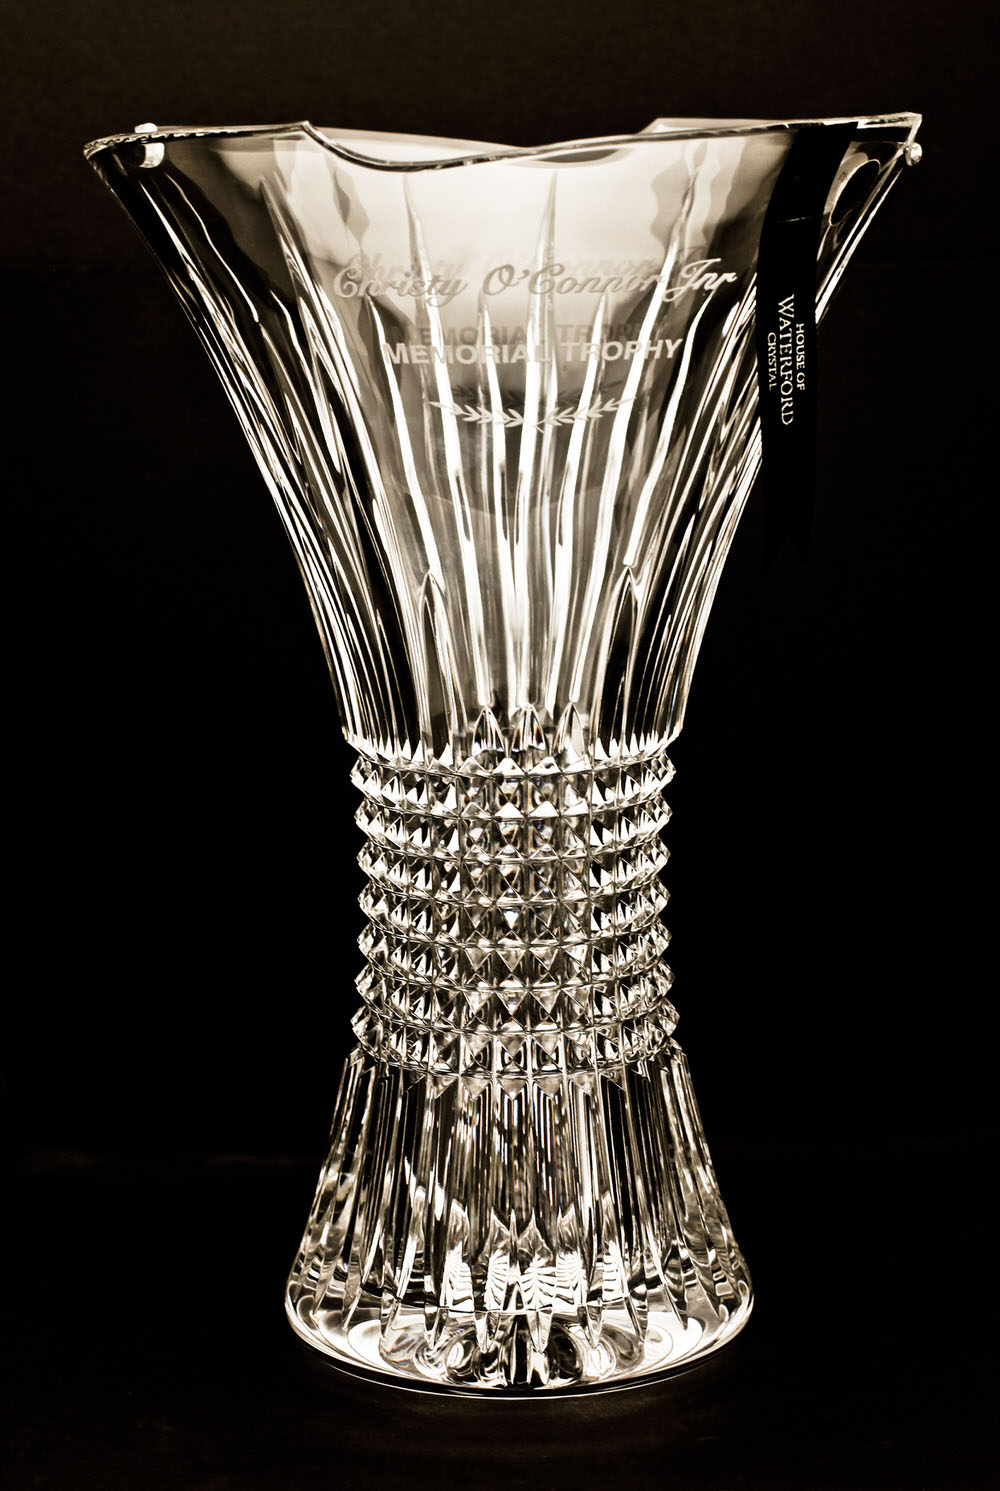 The Christy O'Connor Jnr Memorial Trophy, presented by House of Waterford Crystal